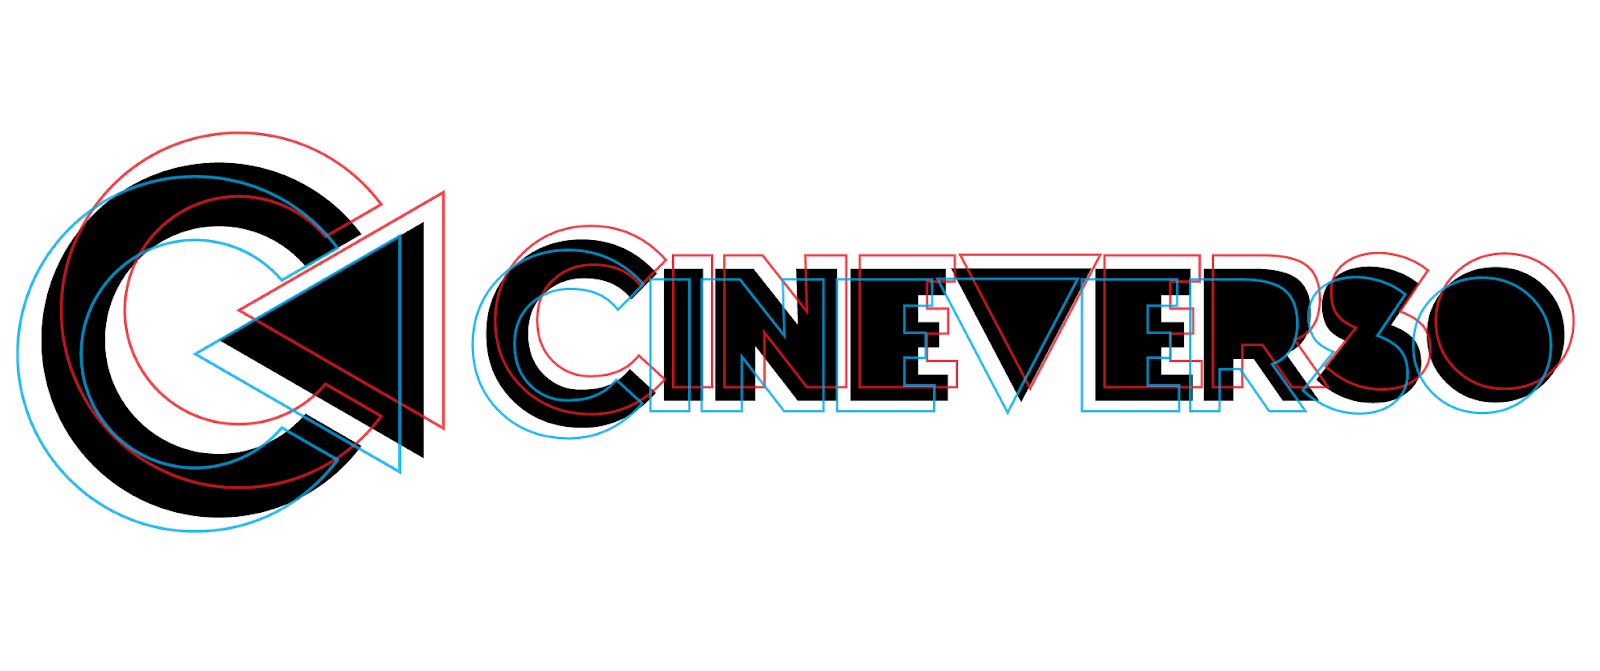 CINEVERSO